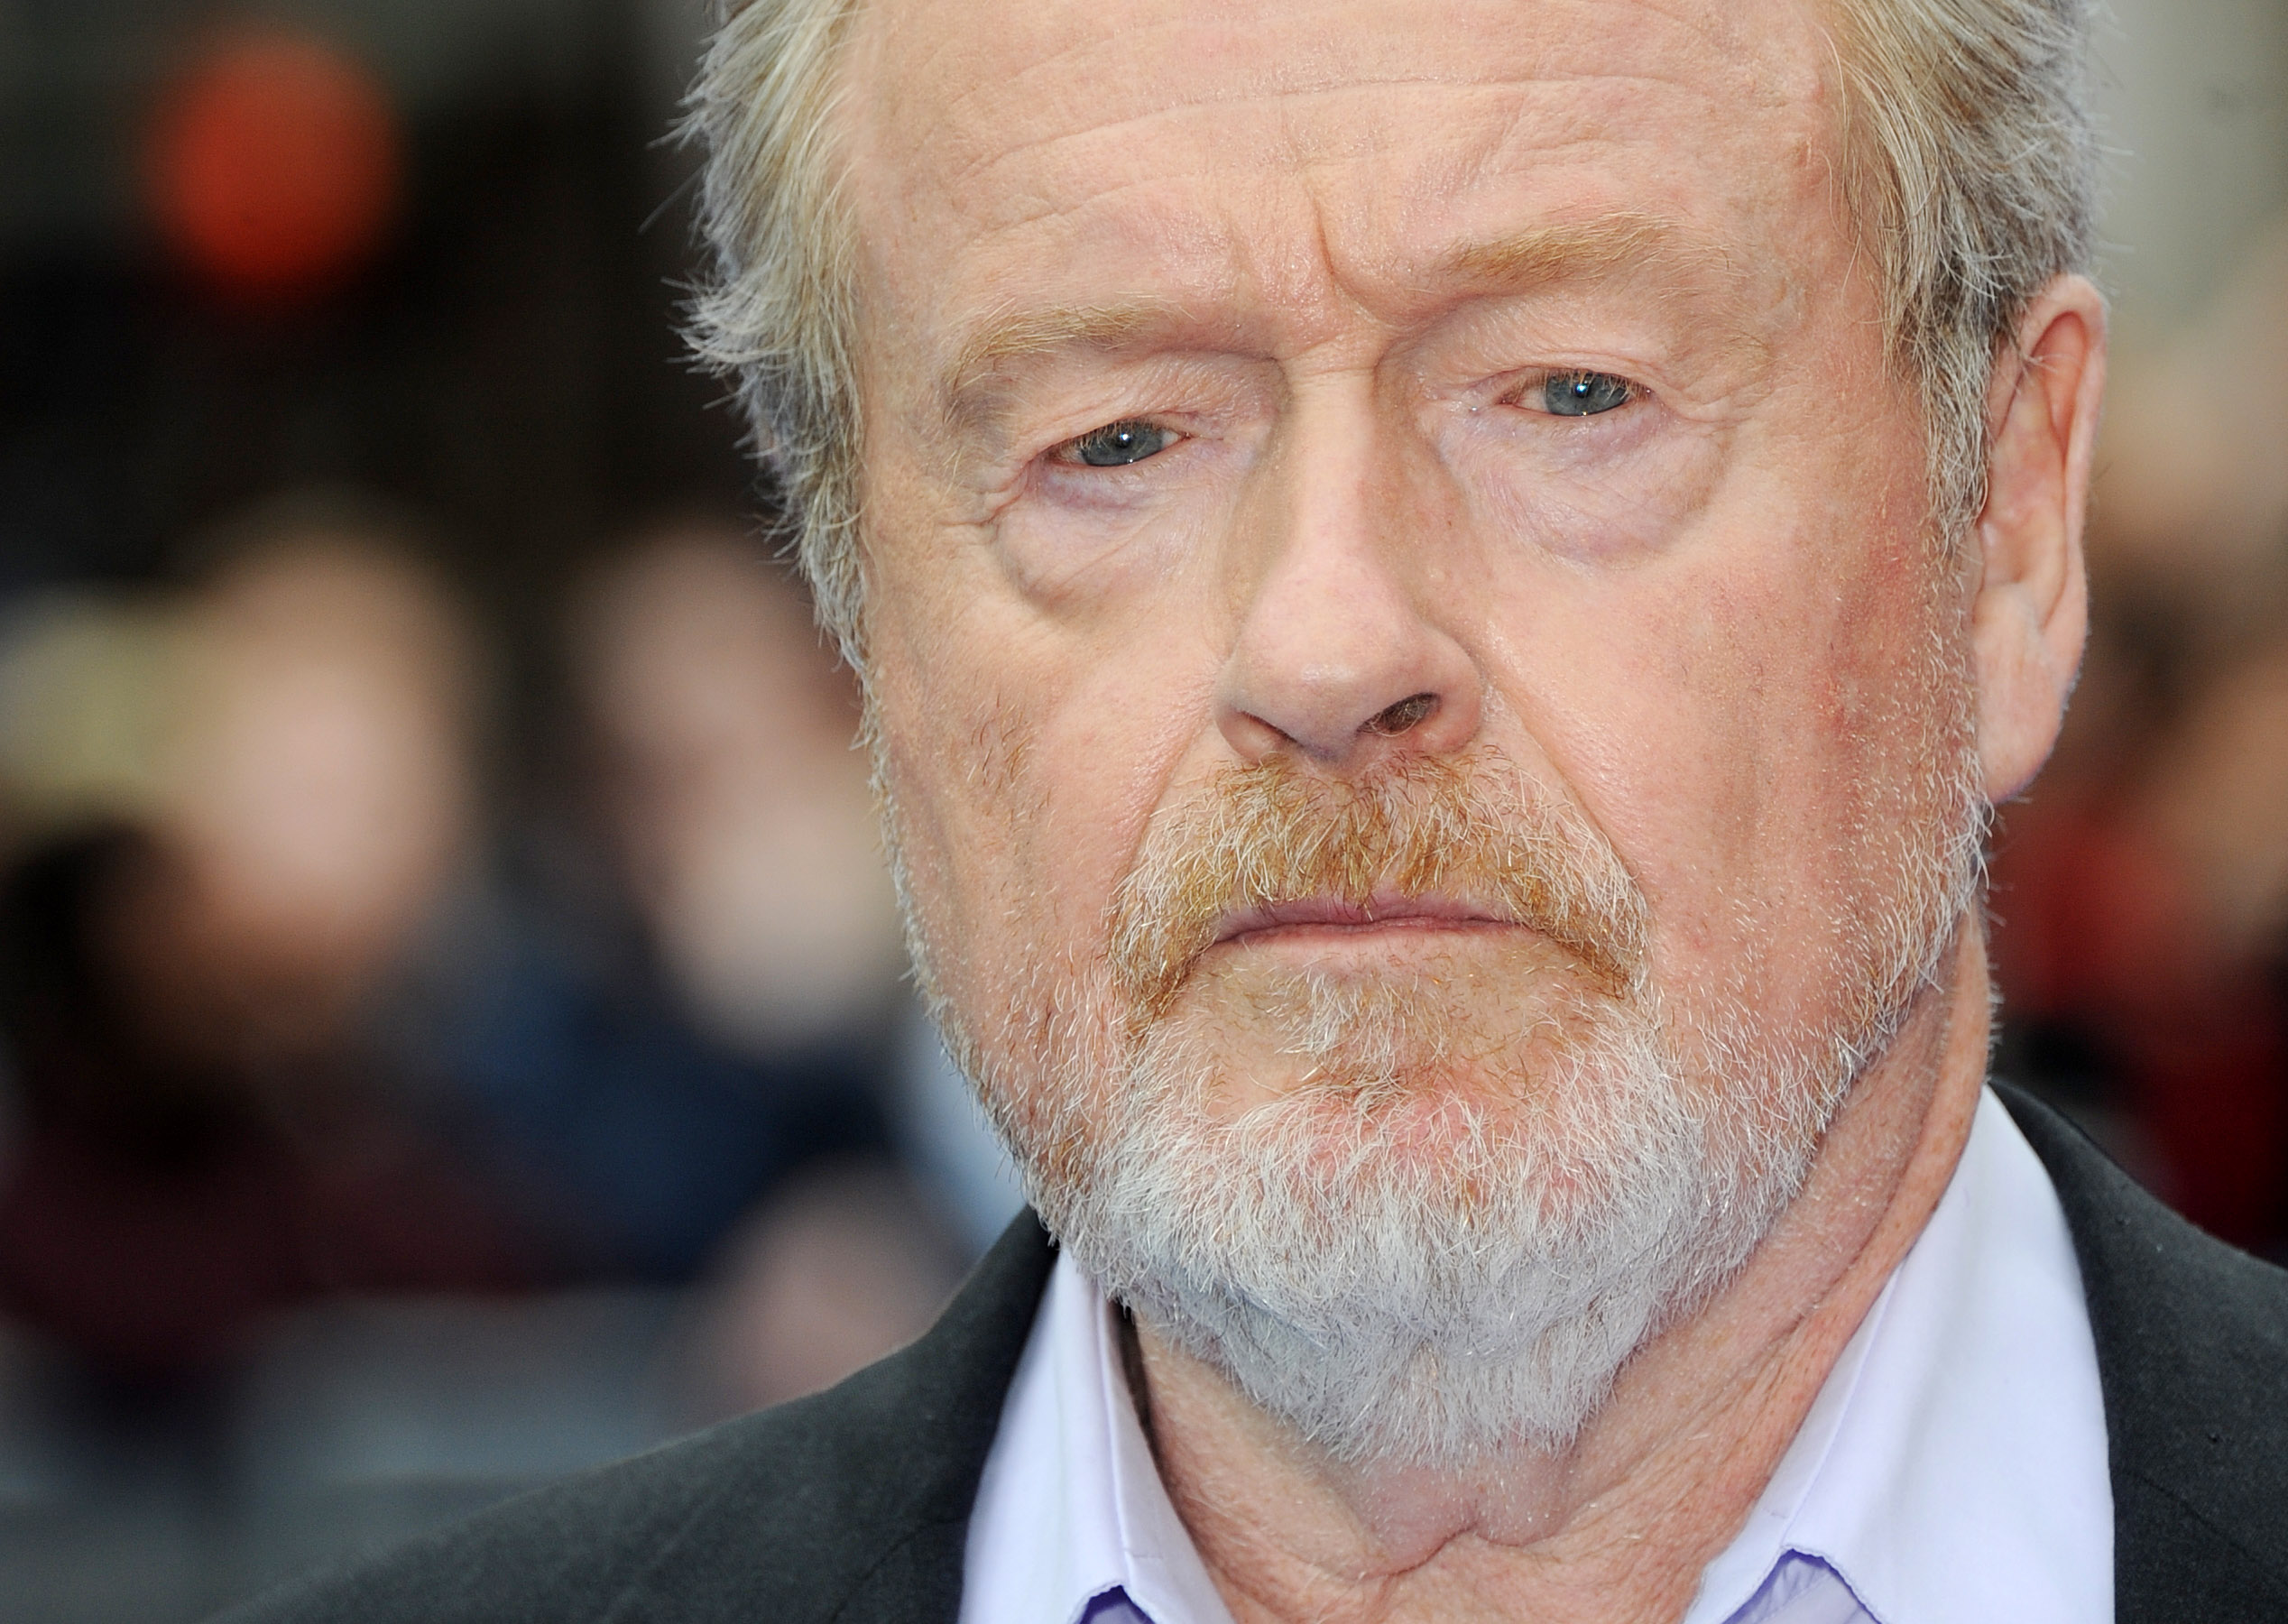 LONDON, UNITED KINGDOM - MAY 31: Director Sir Ridley Scott attends the world premiere of Prometheus at Empire Leicester Squar